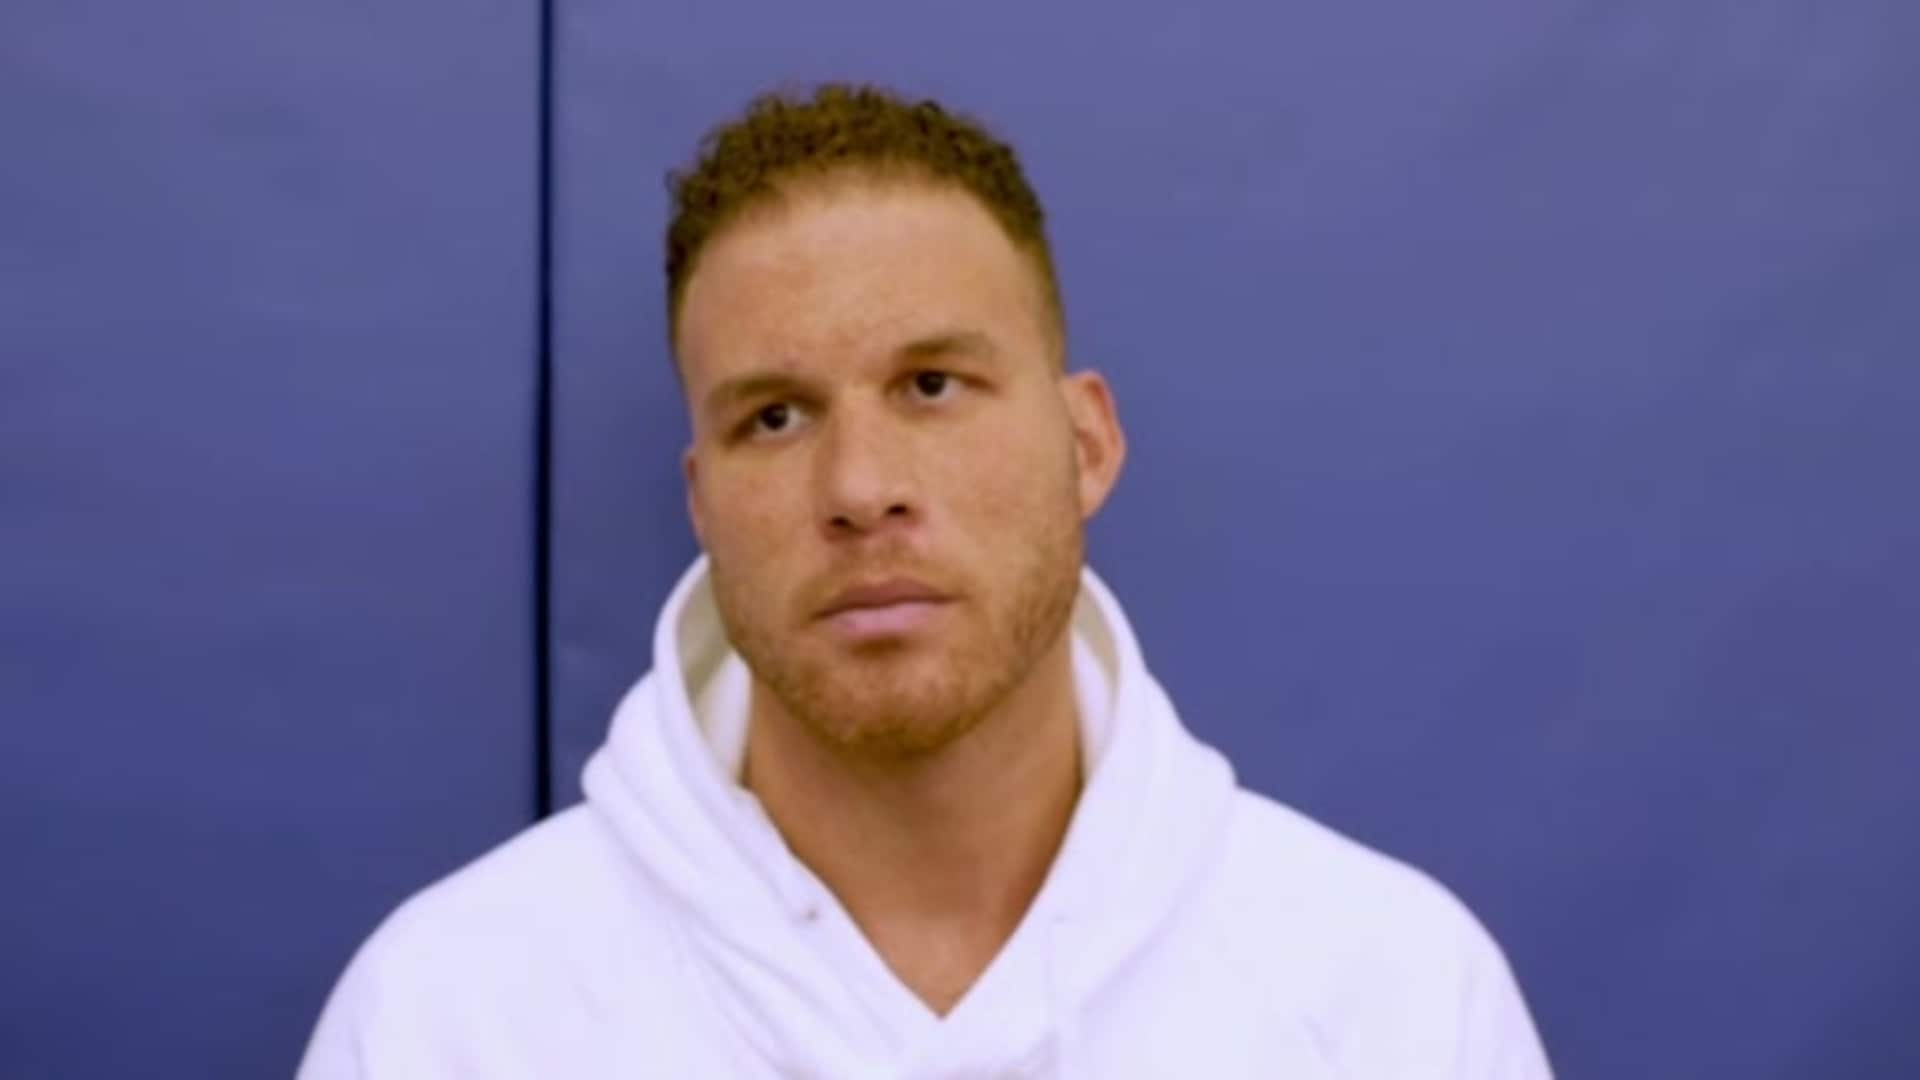 Wired, presented by Jeep: March 6, 2019 Sound - Blake Griffin